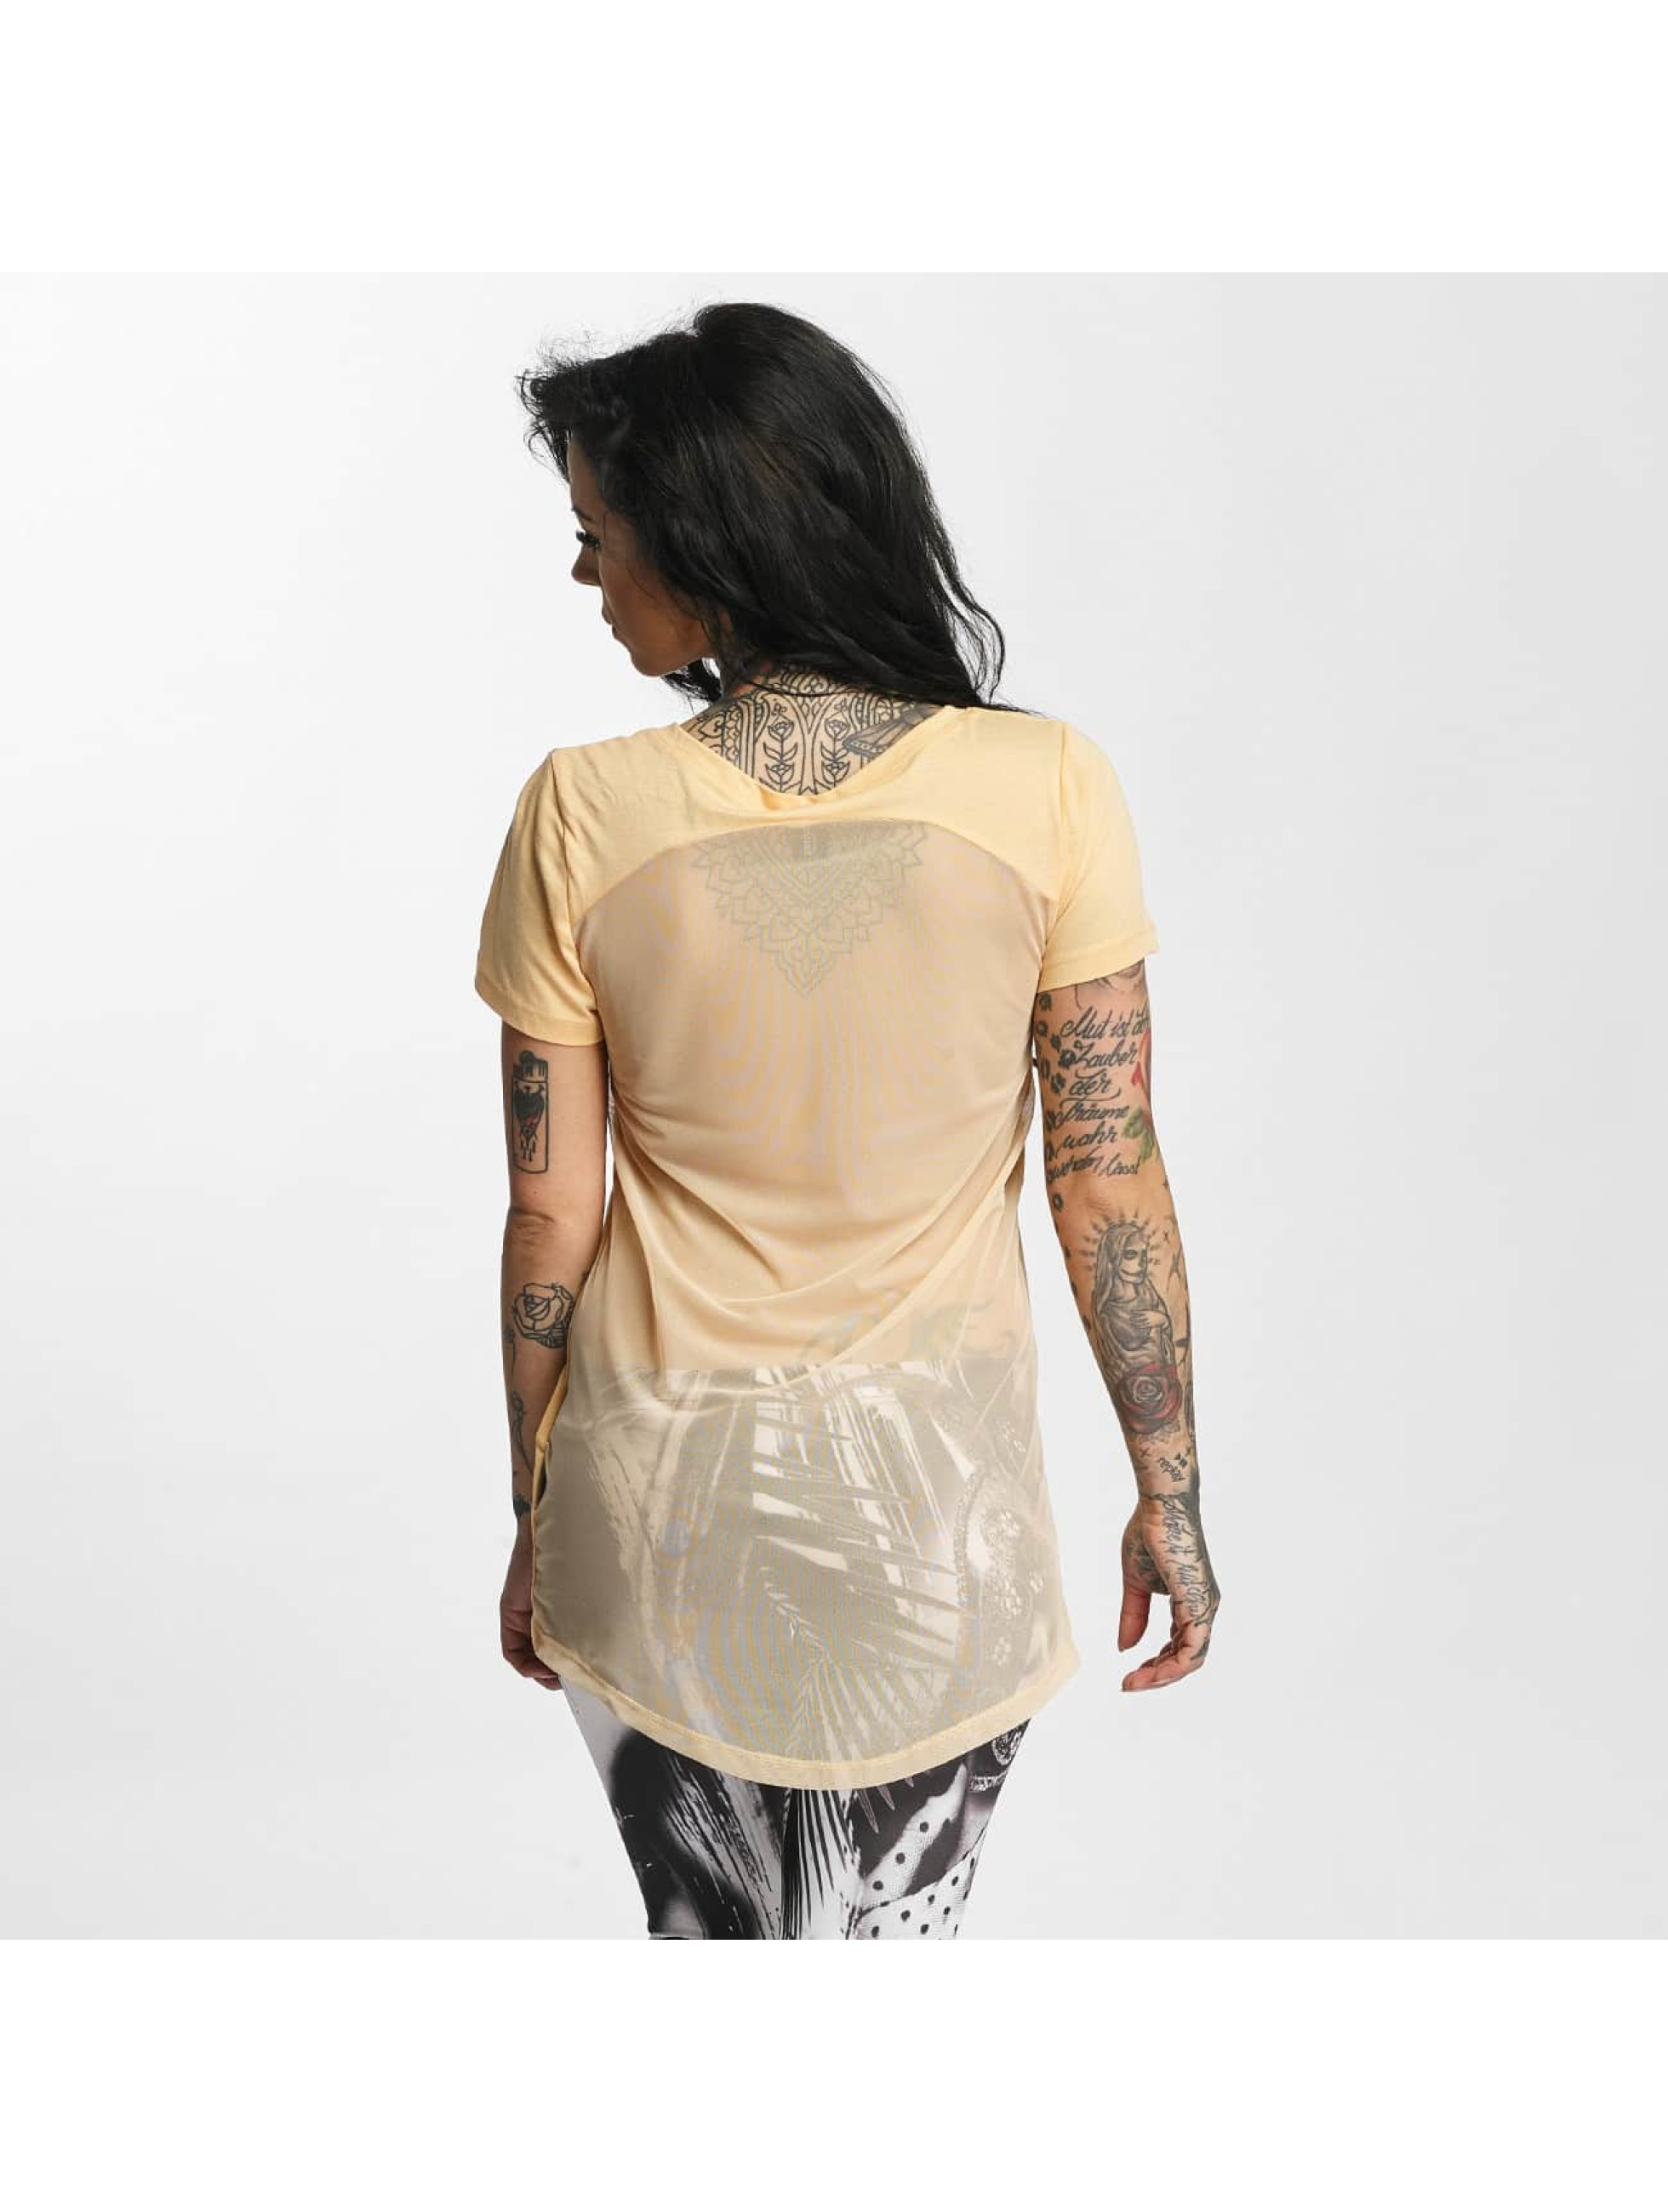 Yakuza-Donne-Maglieria-T-shirt-All-Thats-Left-Limid